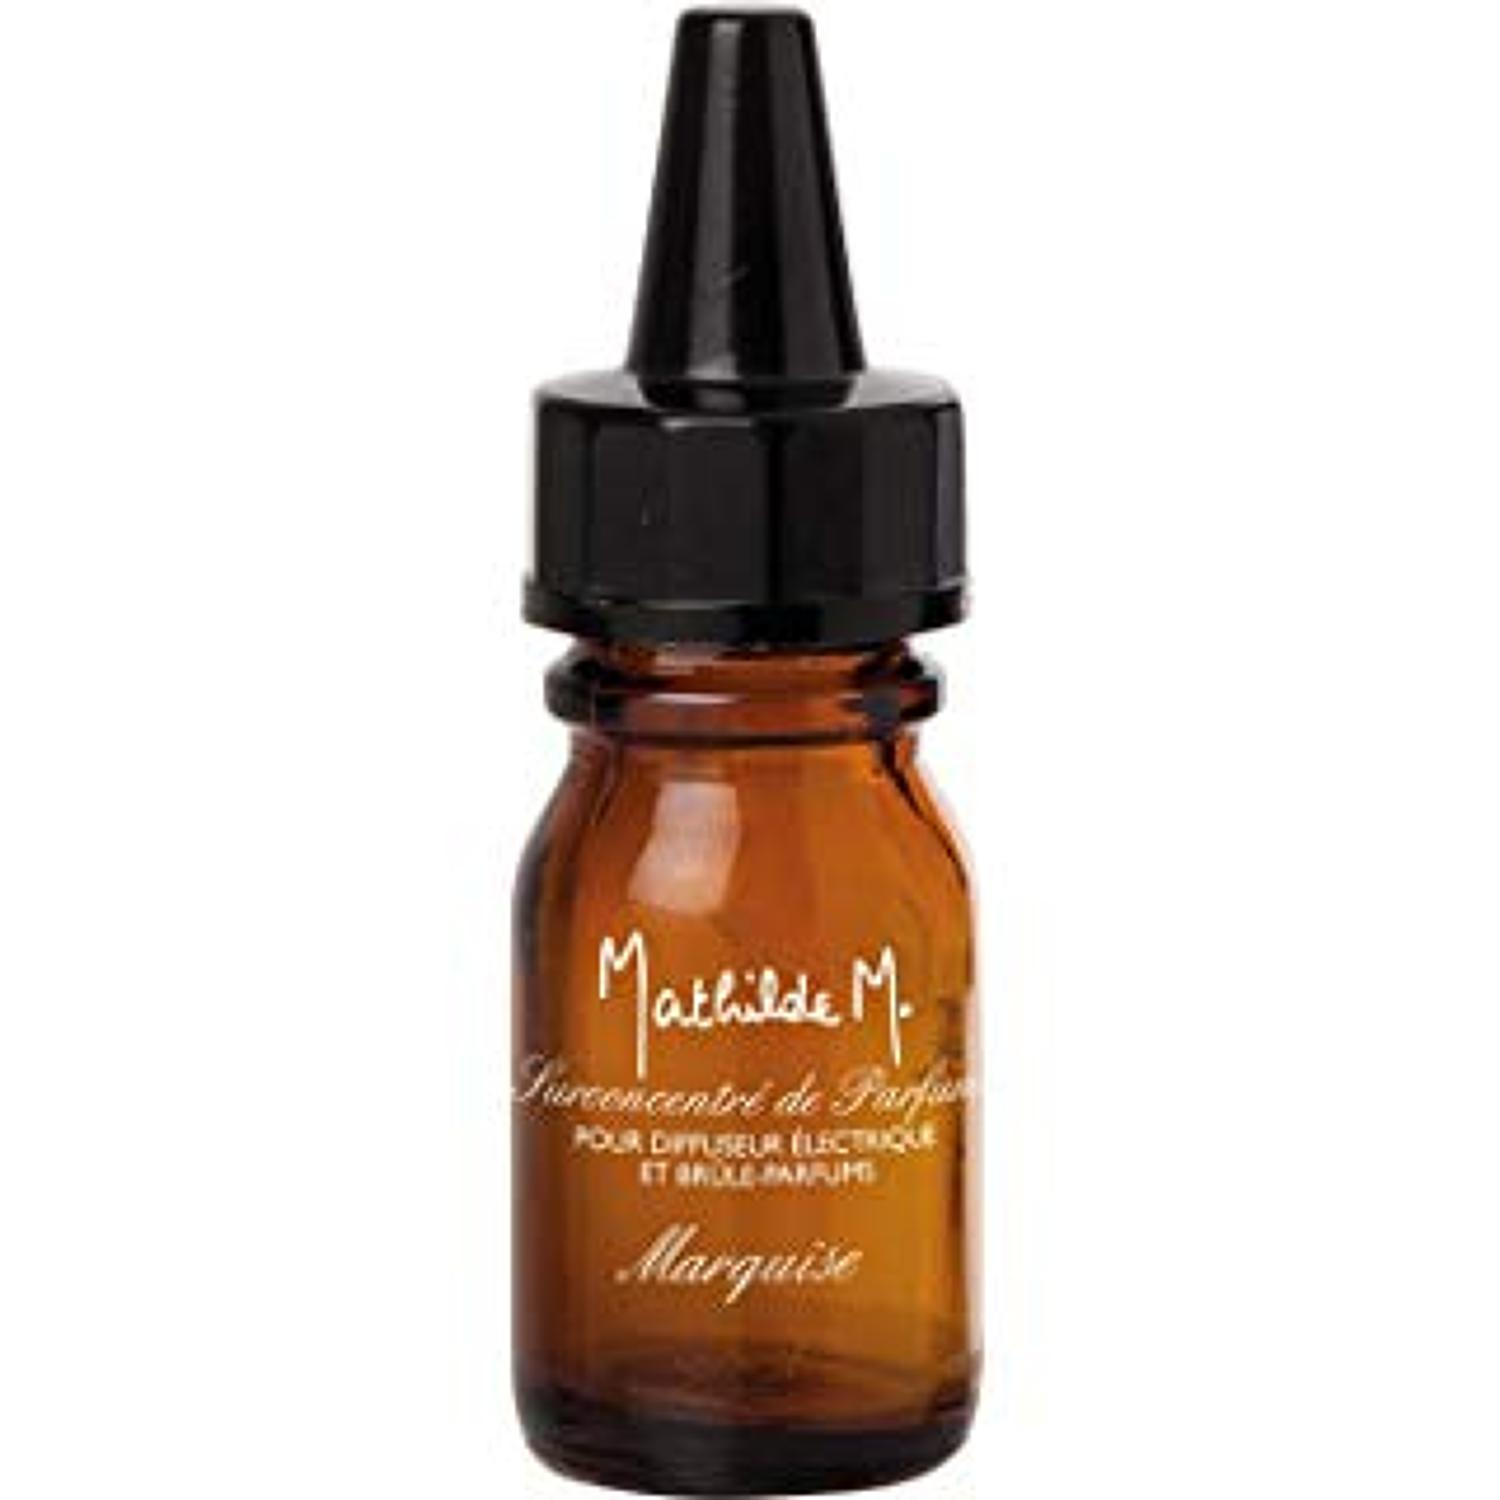 Mathilde M. Concentrate Oil - Marquise Fragrance.